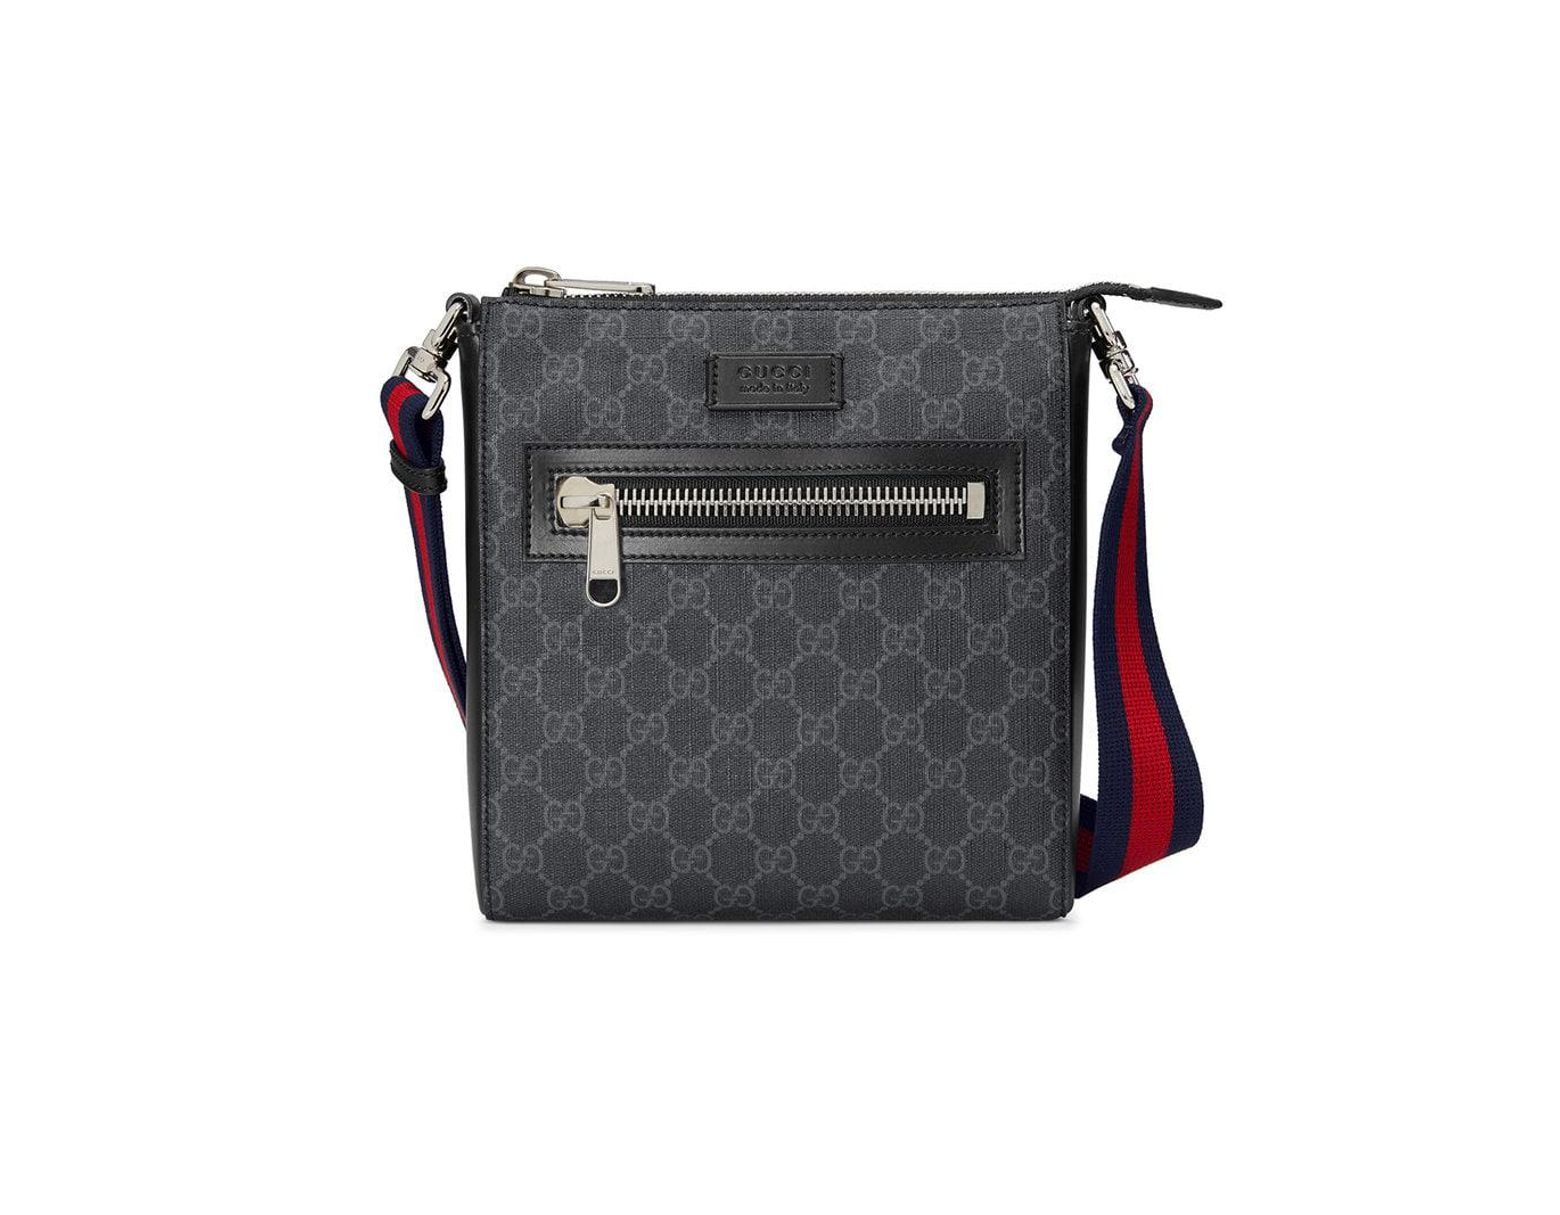 686729815b7 Gucci GG Supreme Small Messenger Bag in Black for Men - Save 15% - Lyst